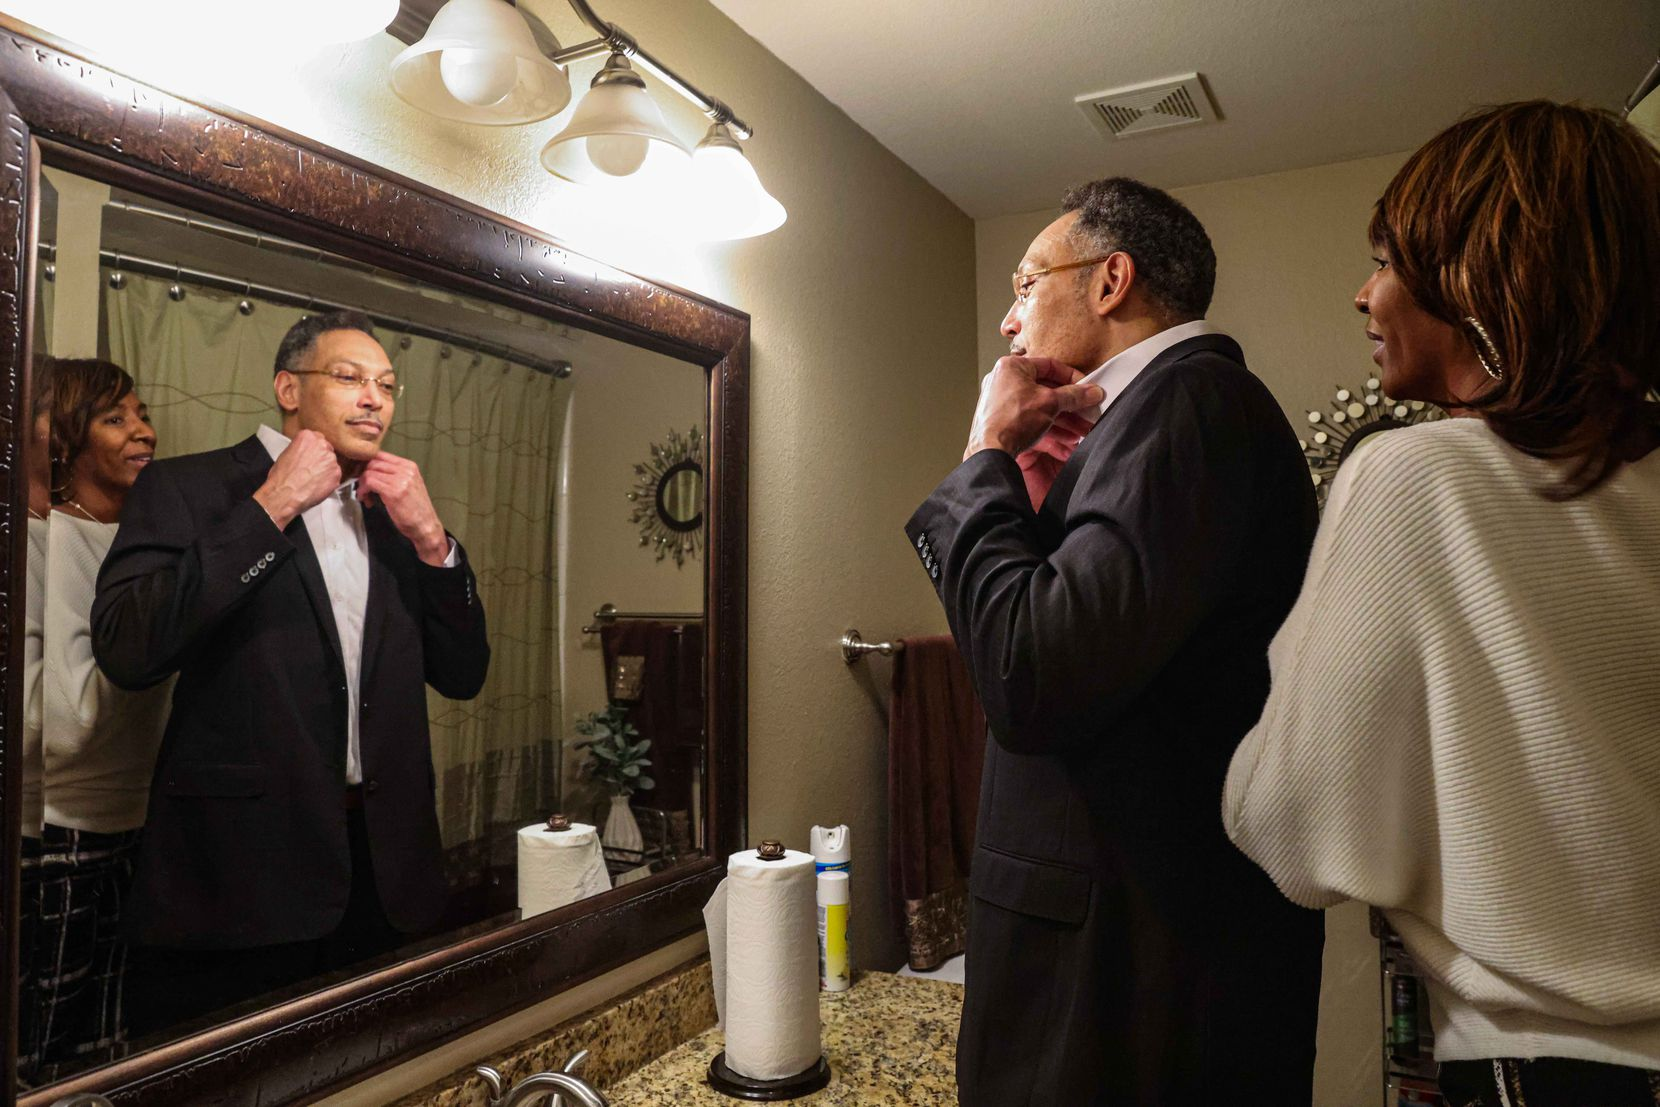 Ben Spencer checks himself out in a bathroom mirror with his ex-wife Debra Spencer at their home in Cedar Hill after he was released from the Dallas County jail on Friday, March 12, 2021. Debra Spencer never stopped supporting him even though they divorced while he was in prison.